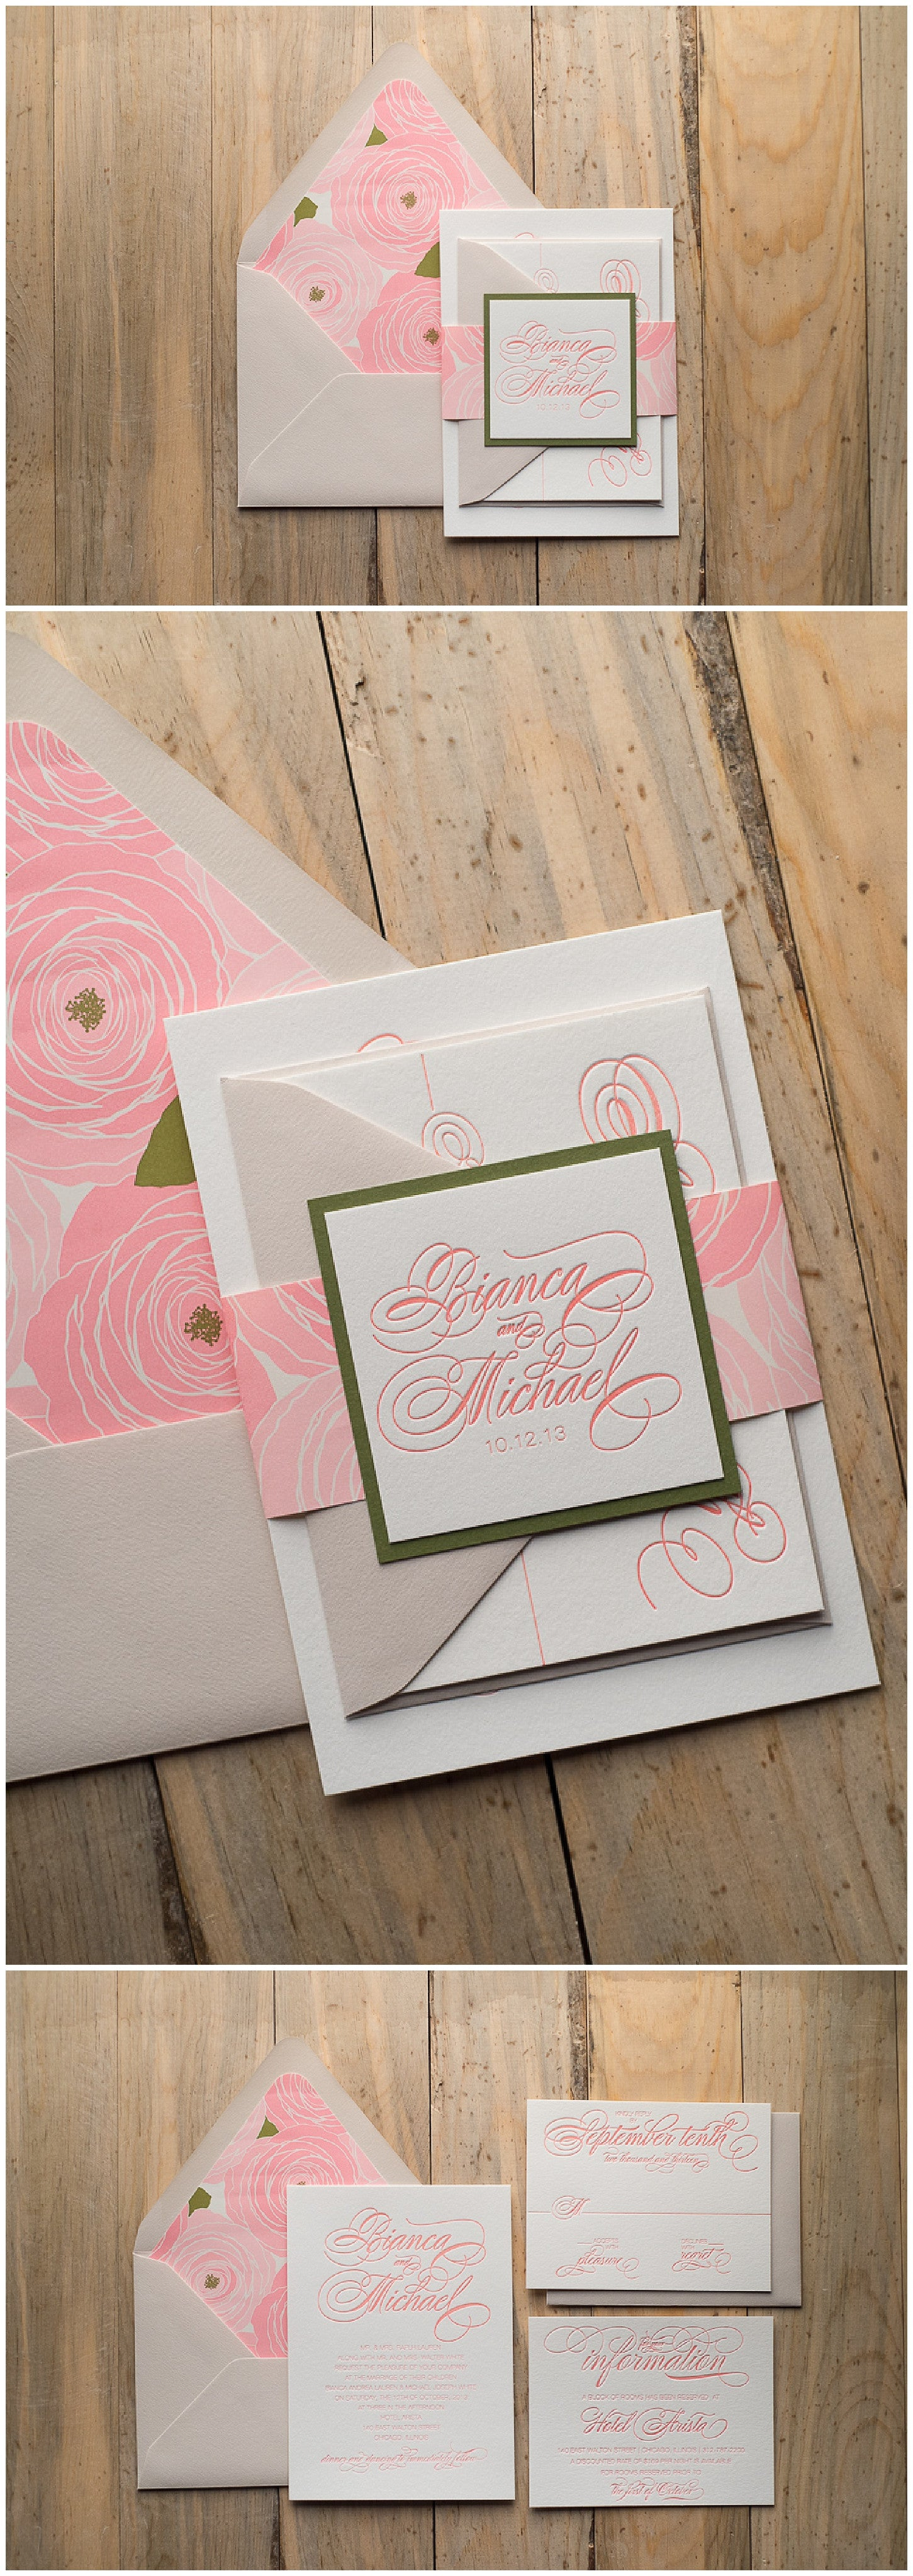 Wedding Invitations, Letterpress, Calligraphy, Blush Floral, Bianca Suite, Just Invite Me